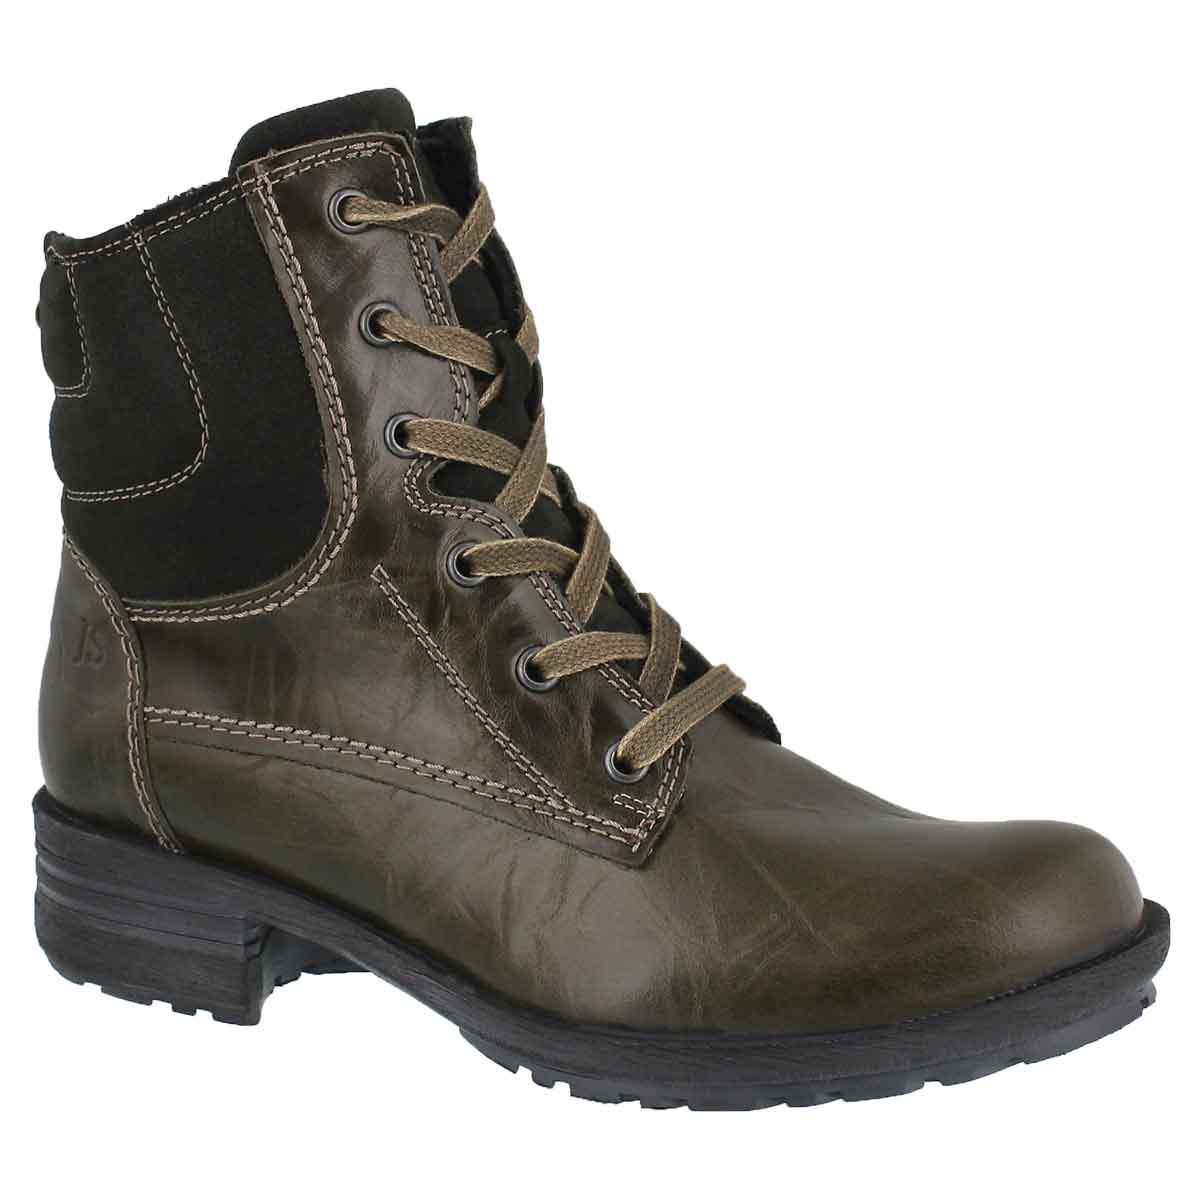 Women's SANDRA 64 olive lace up casual boots